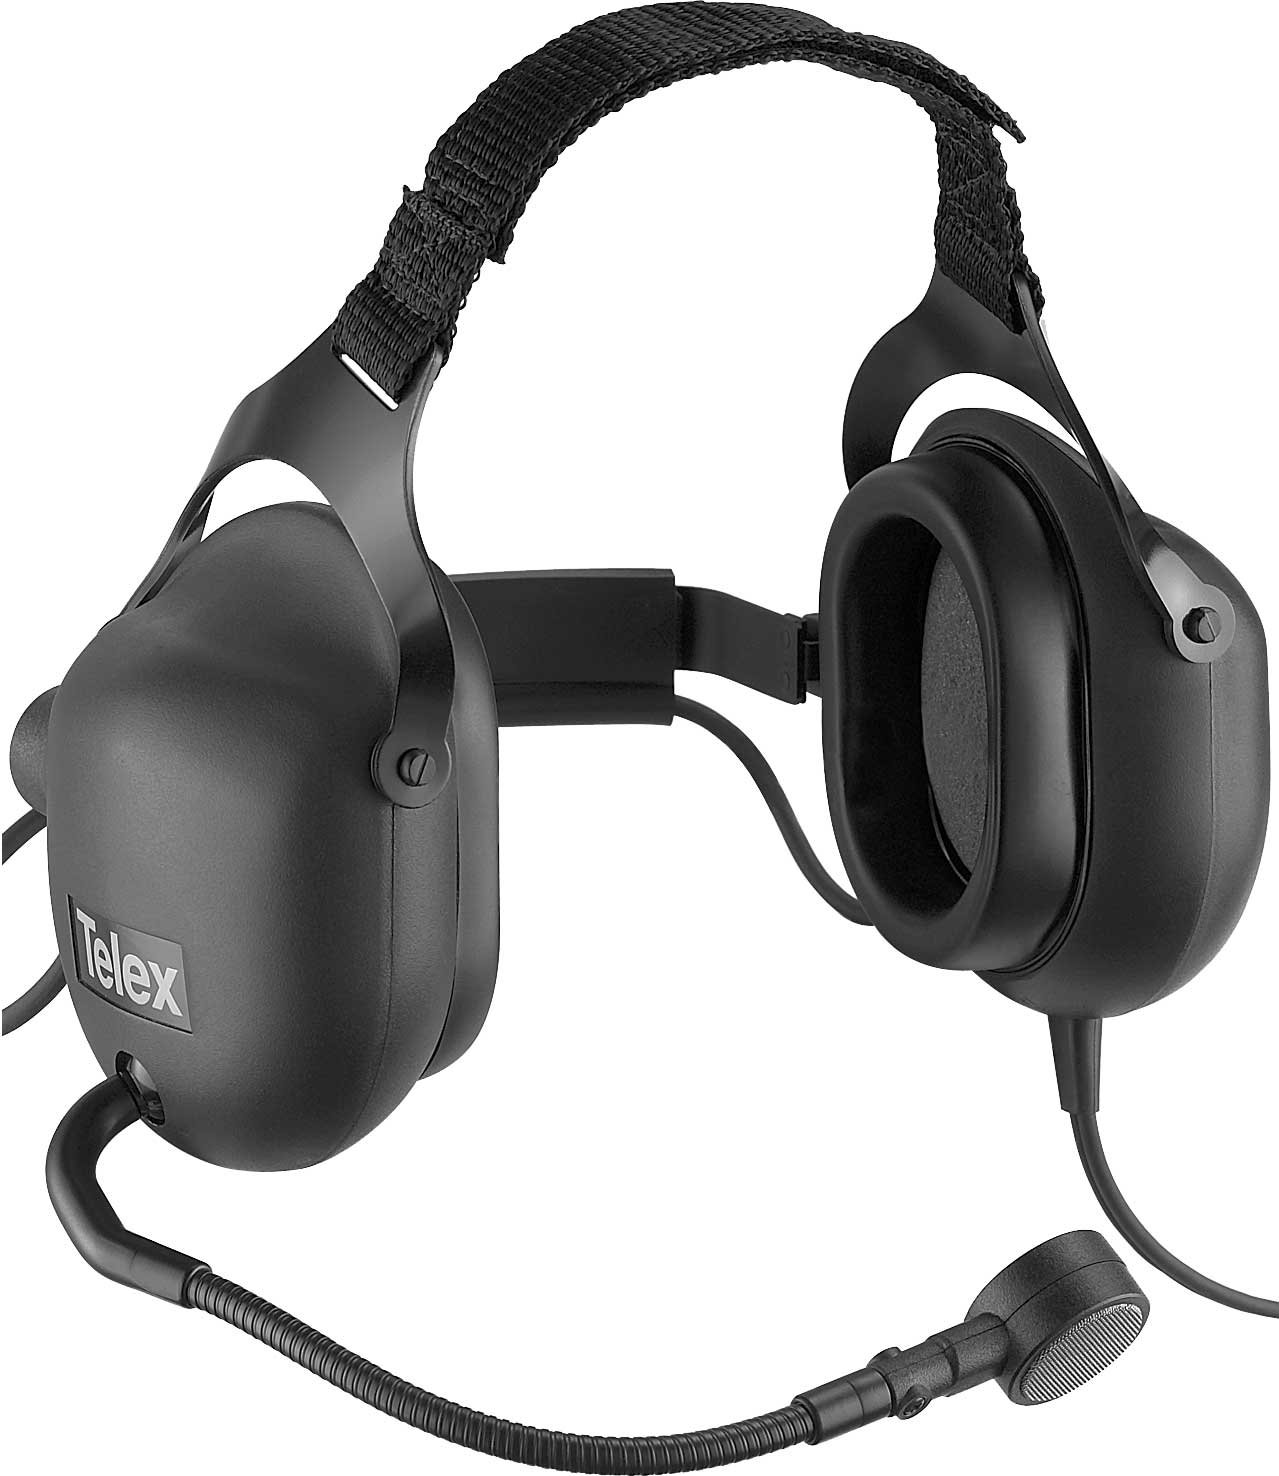 2-Muff Headset Microphone with A4F Connector